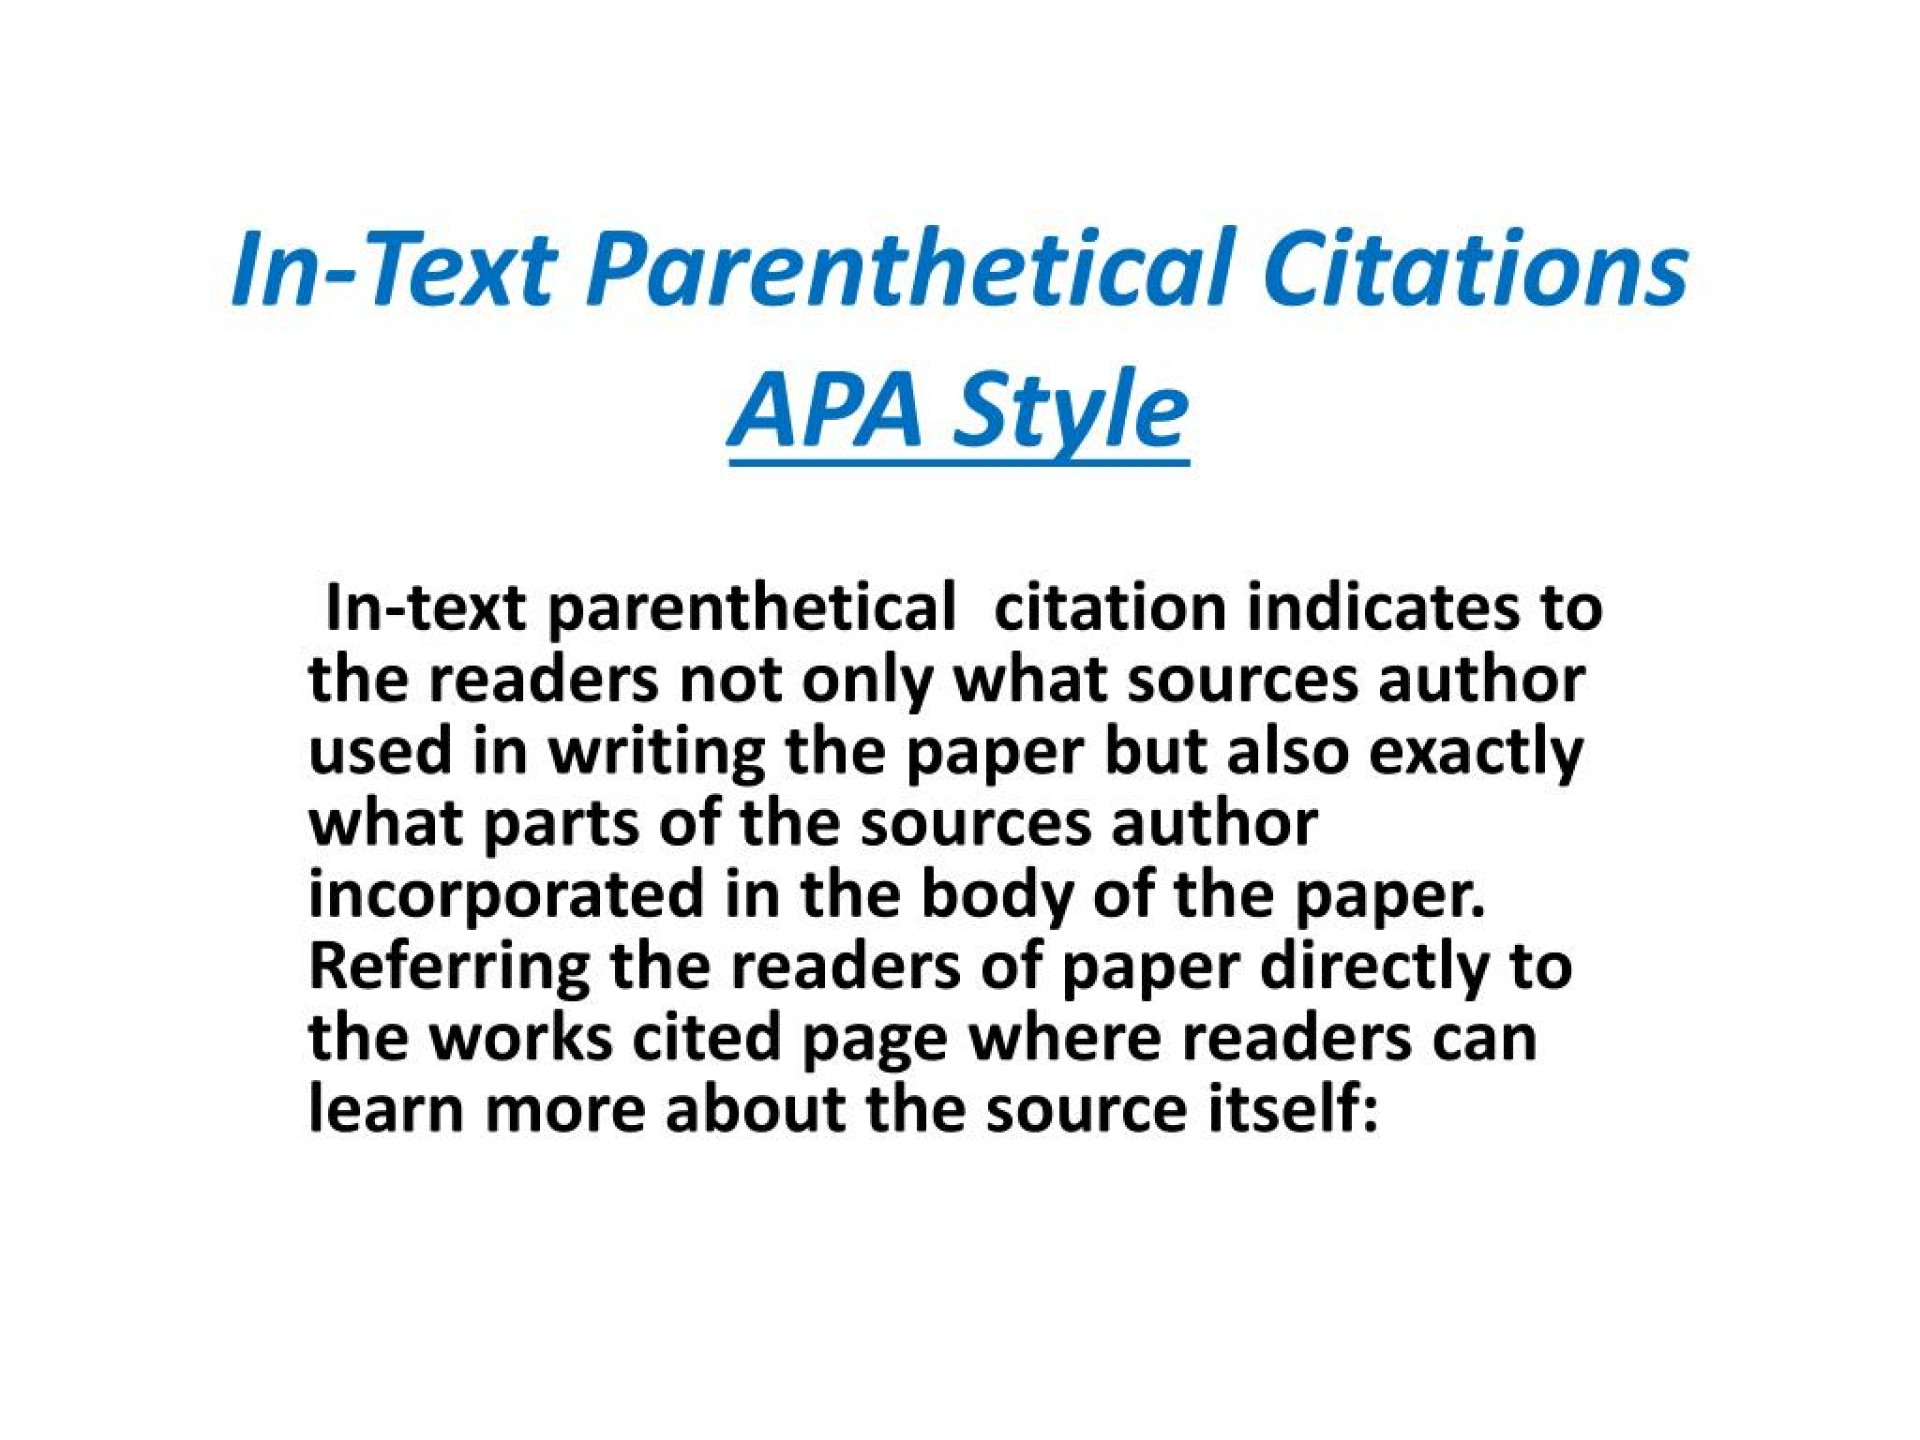 015 Apa Citation In Essay Example Text Parenthetical Citations Style Stupendous Cite A Book Paper Multiple Authors 1920